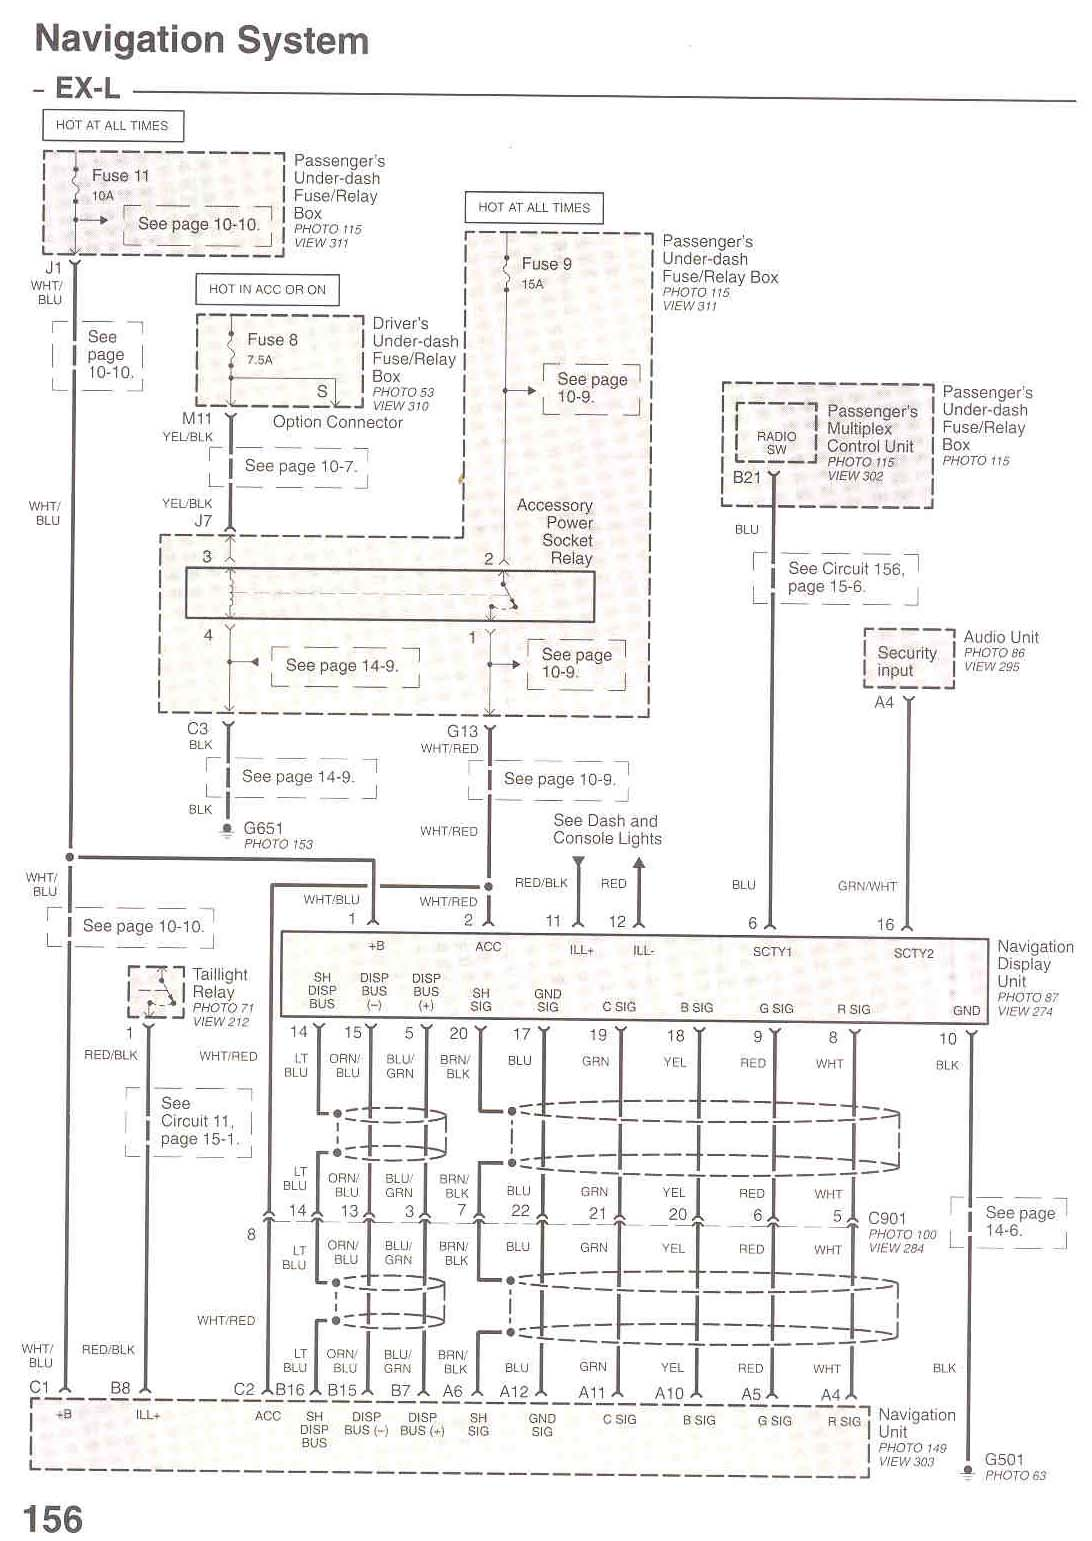 Honda 2005 Wiring Diagram Schematic Diagrams 1994 Elite 80 Pilot Ex L Radio In 2004 Rancher